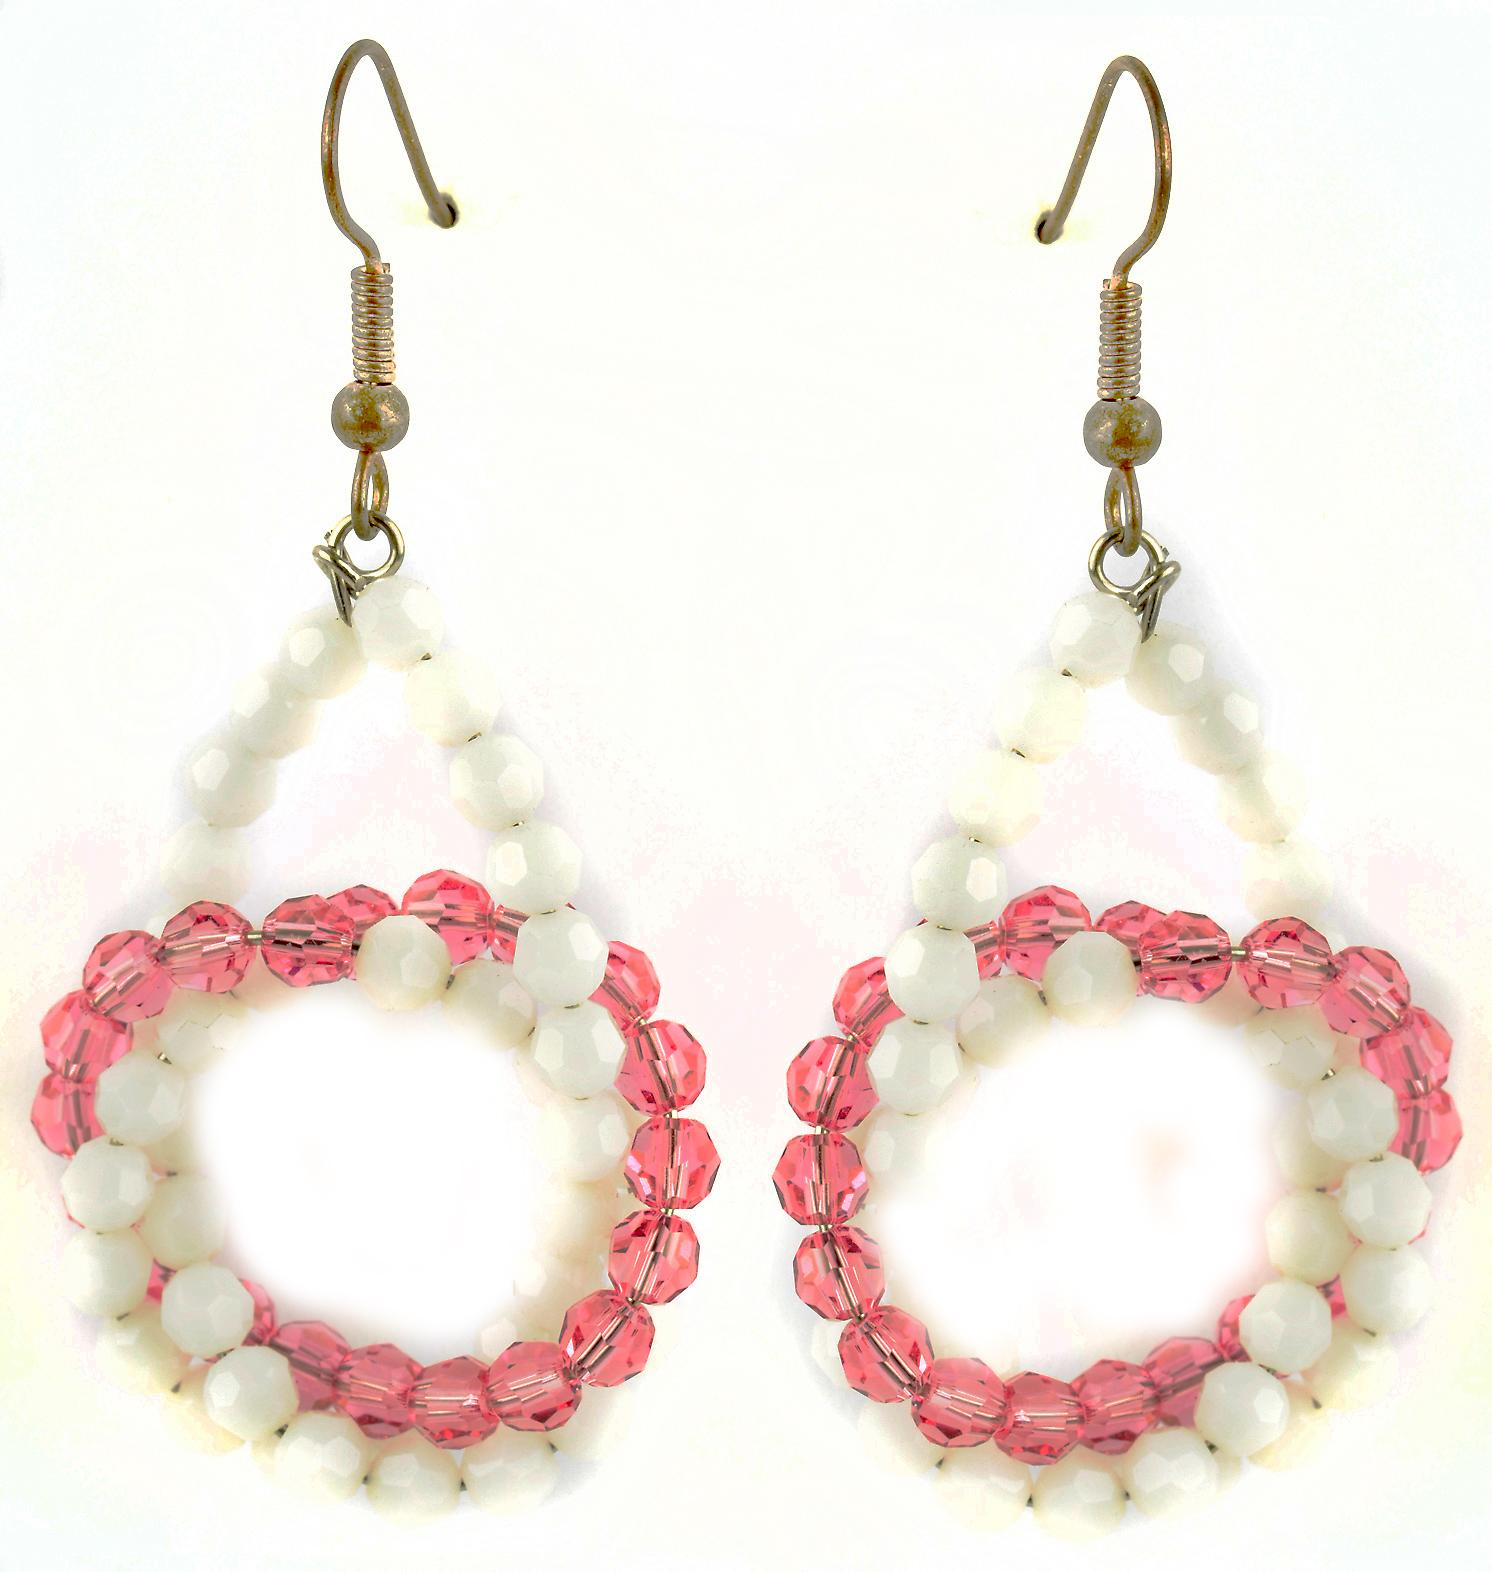 Waooh - Fashion Jewellery - WJ0742 - D'Oreille earrings with Swarovski Strass White and Pink